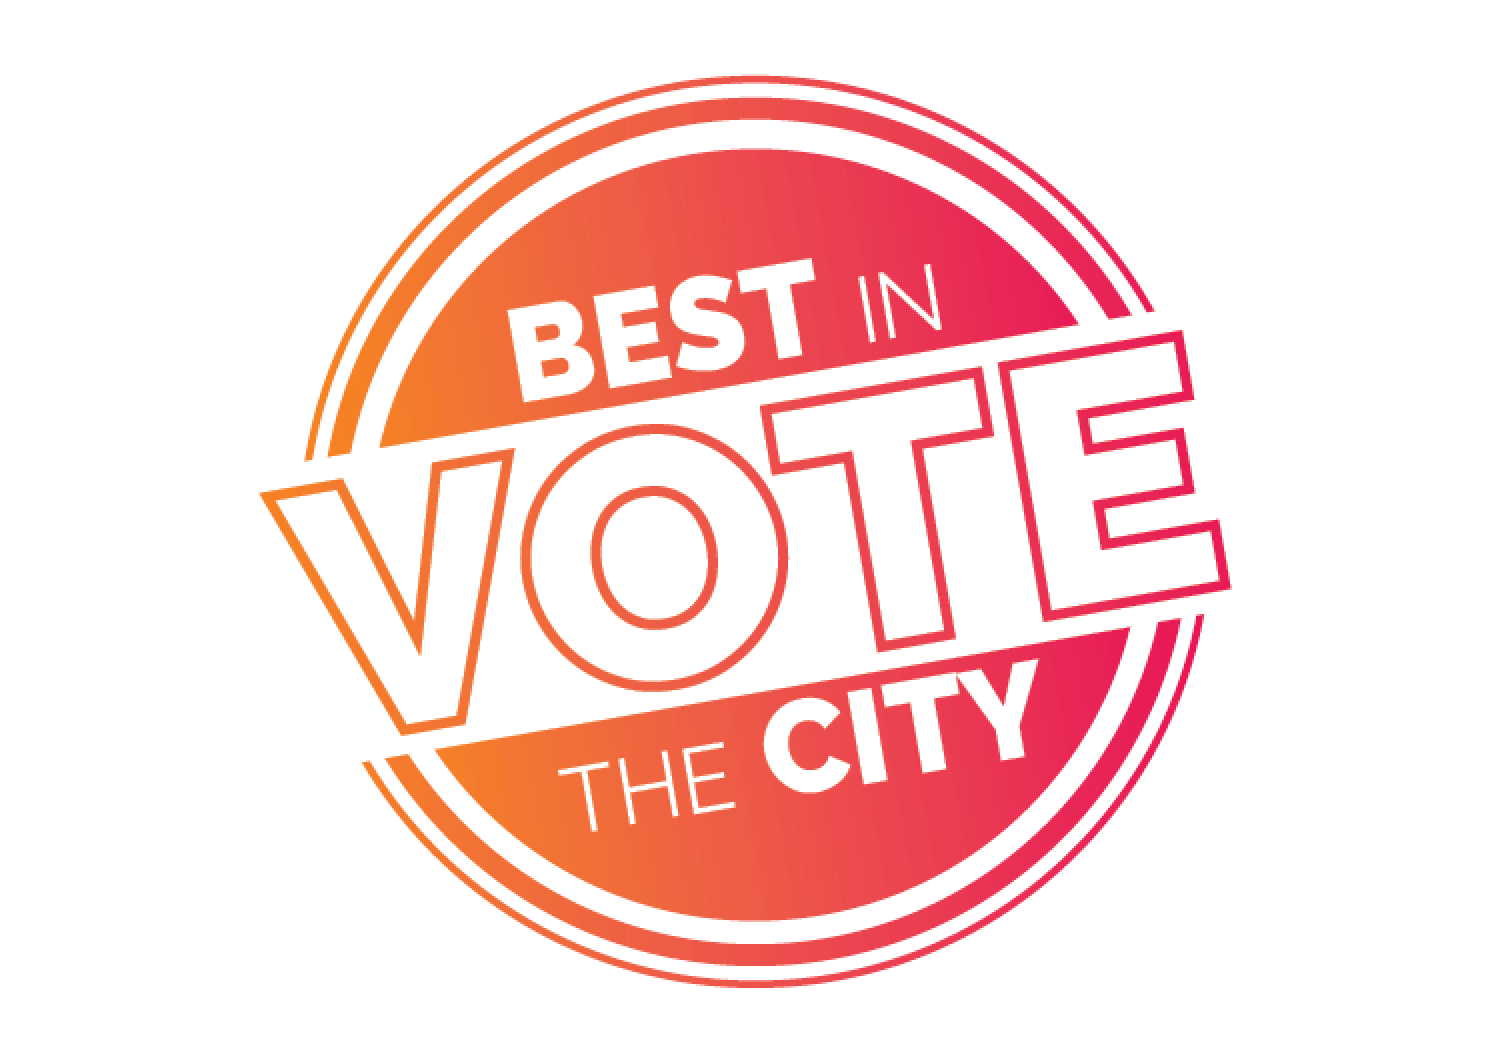 Best in the City: Vote